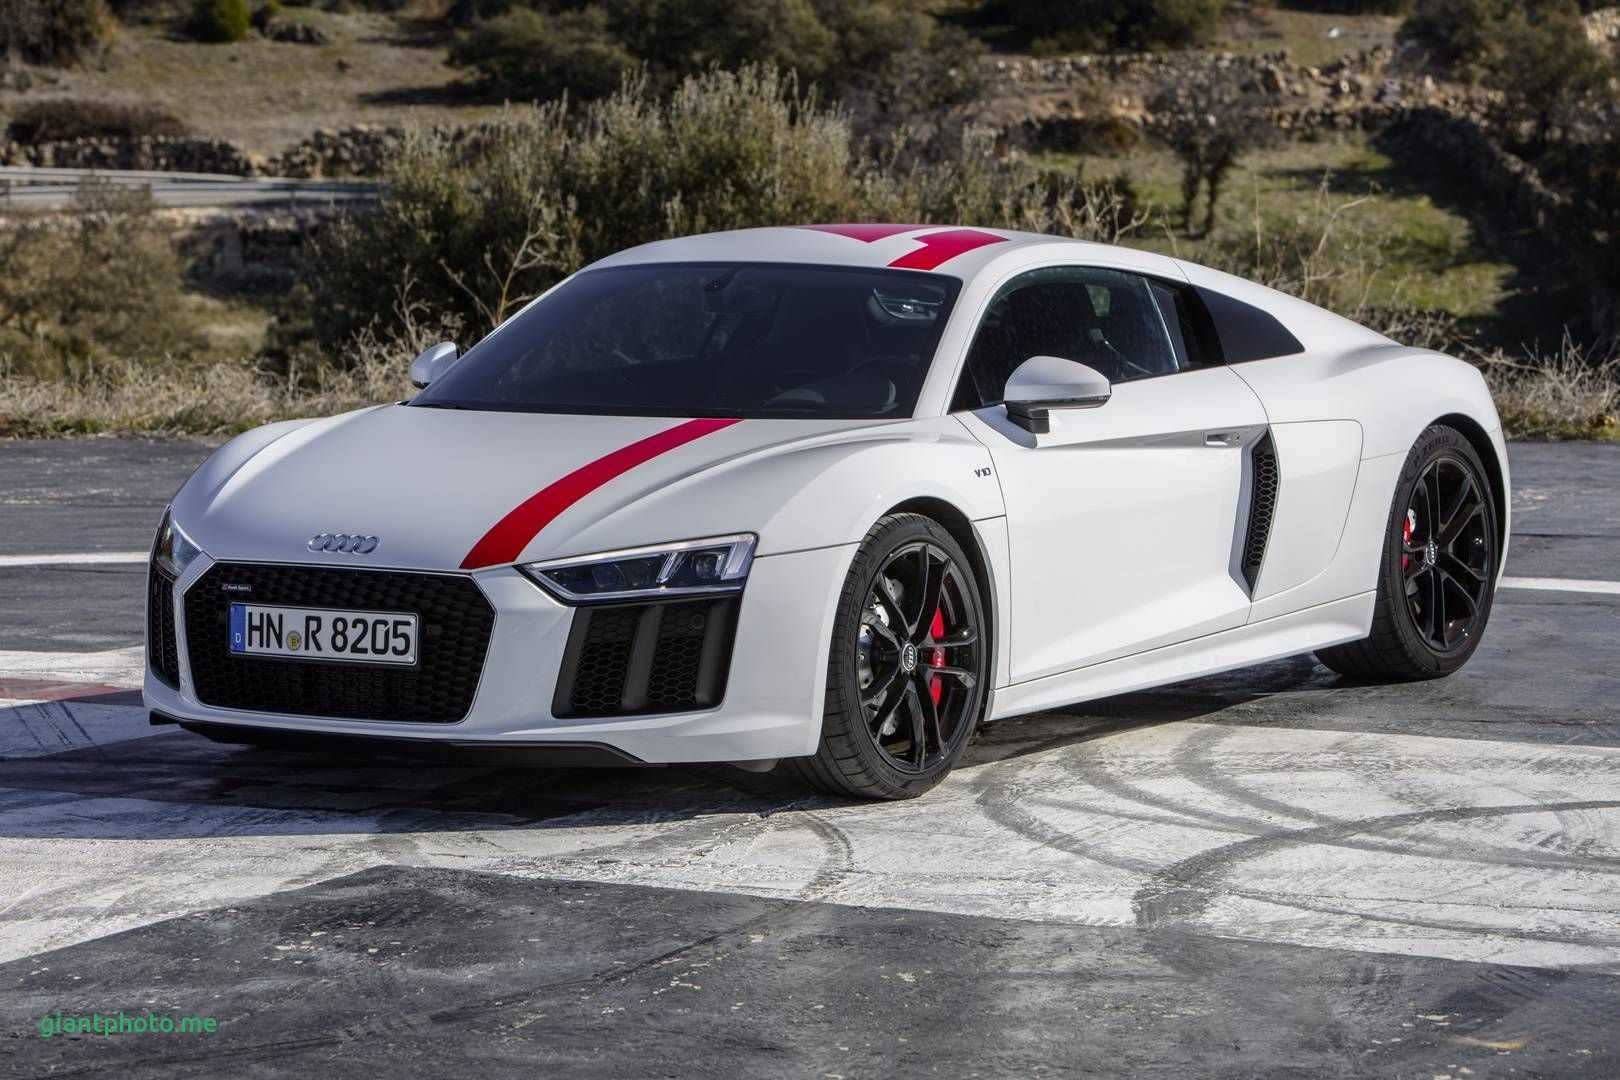 70 New 2020 Audi R8 LMXs Pictures